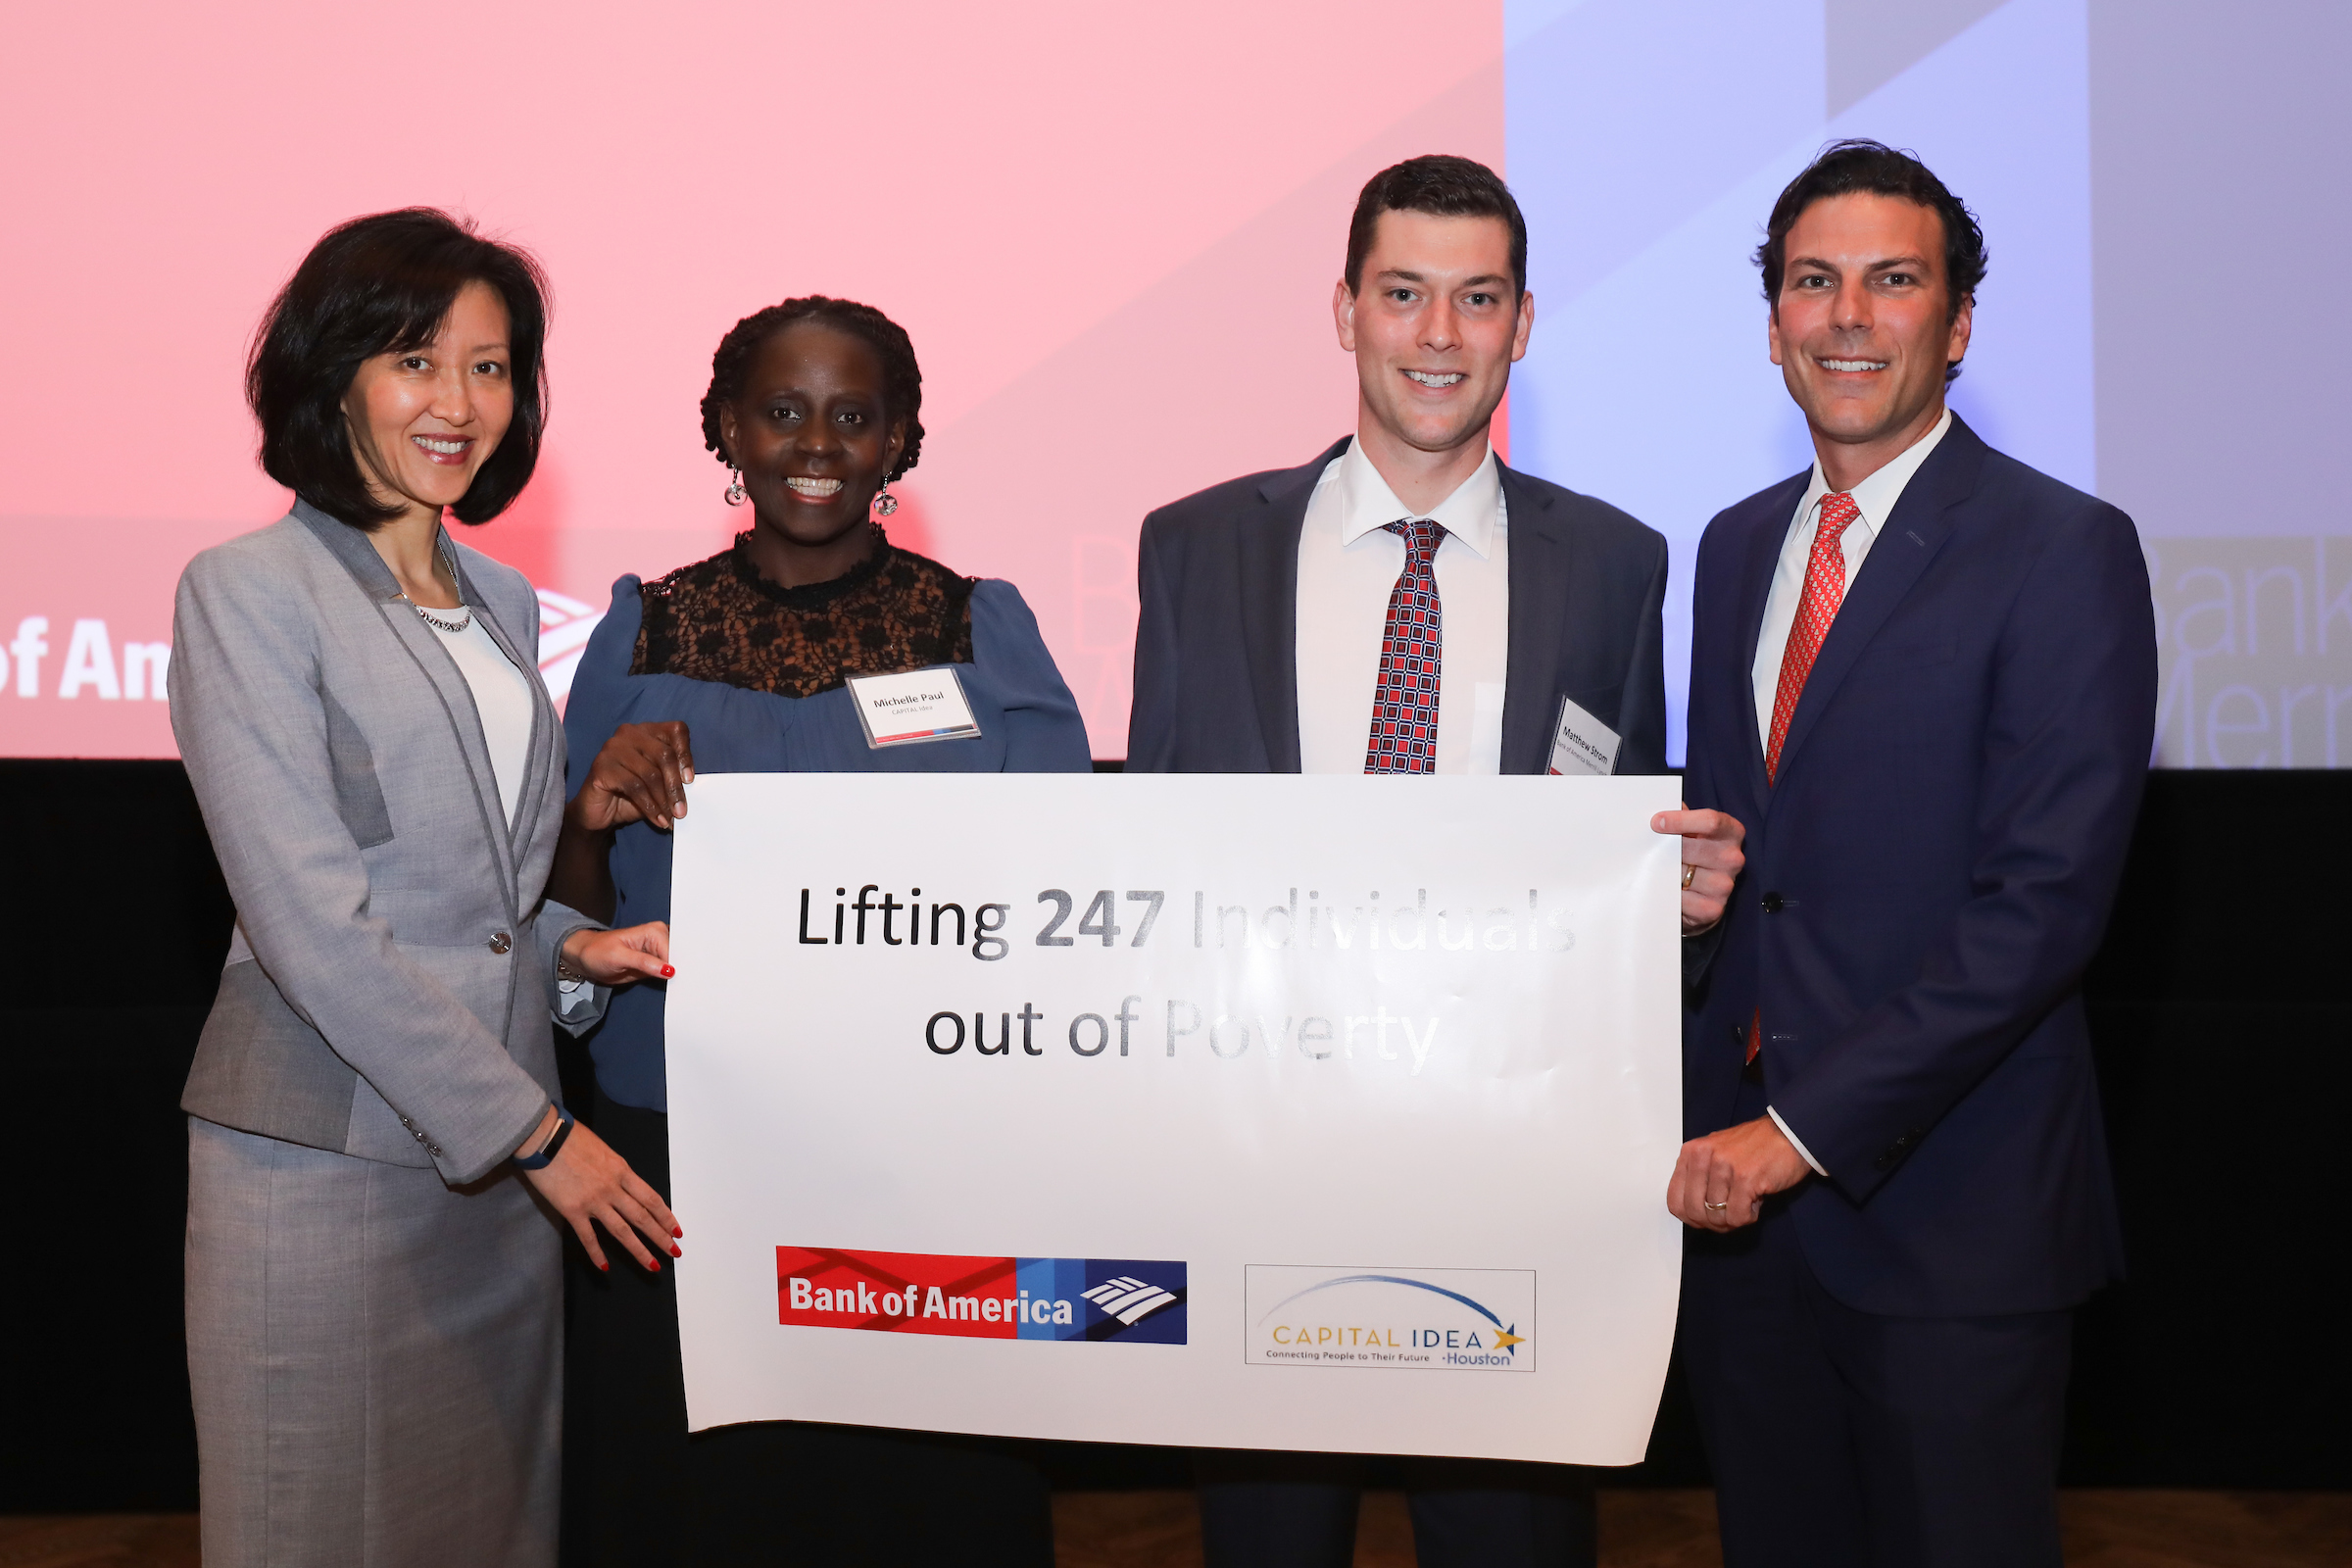 bank of america awards capital idea $20,000!-capital idea houston